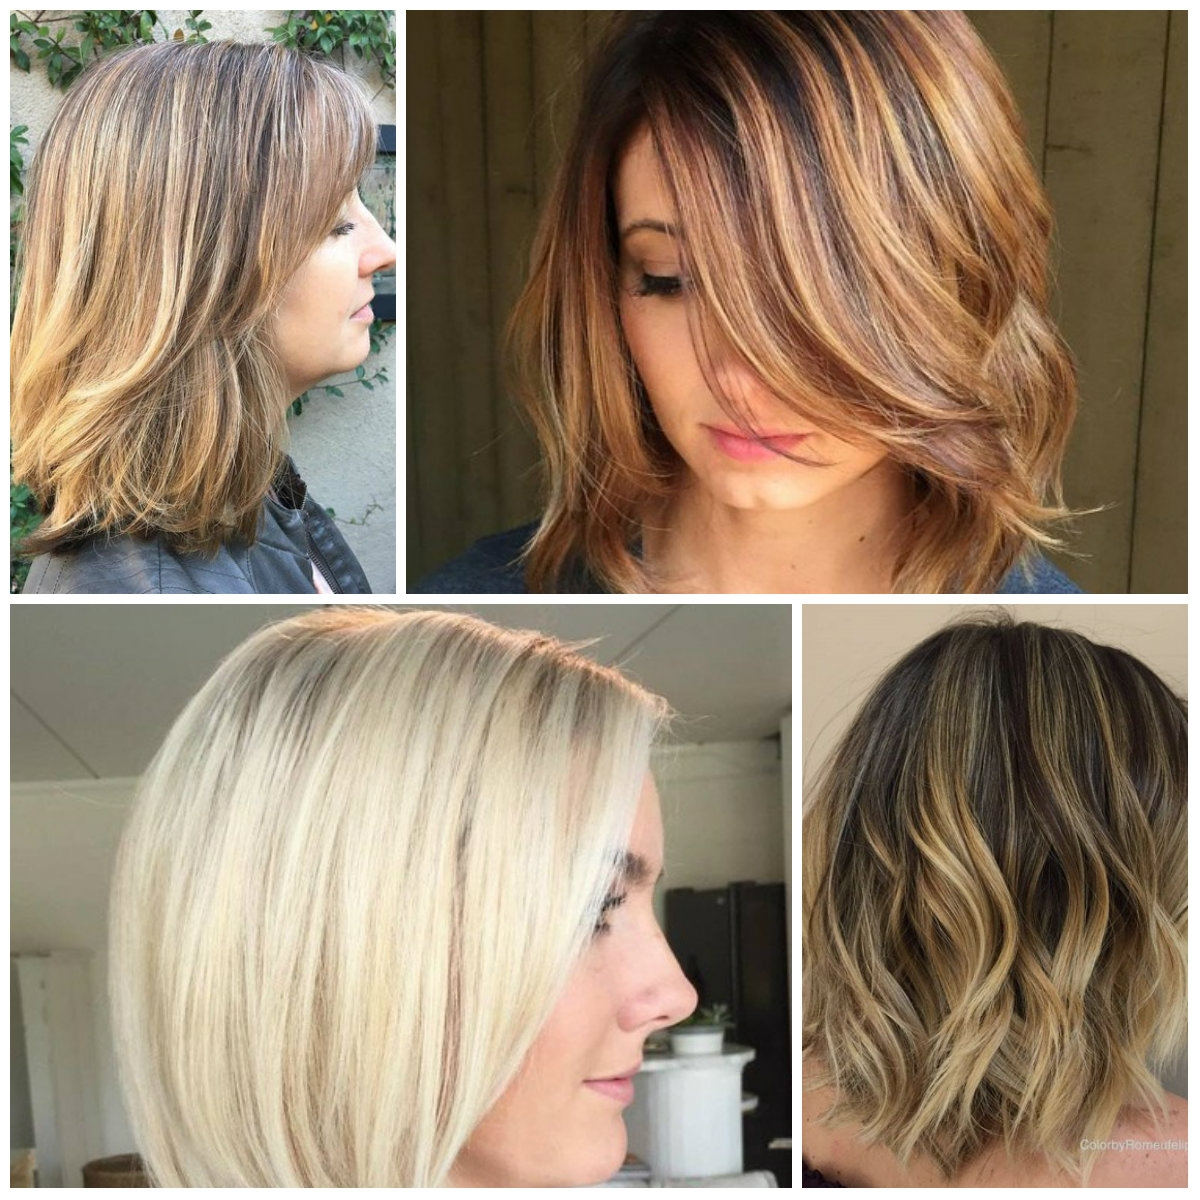 Medium Length Hairstyles And Haircuts For Women's 2018 4